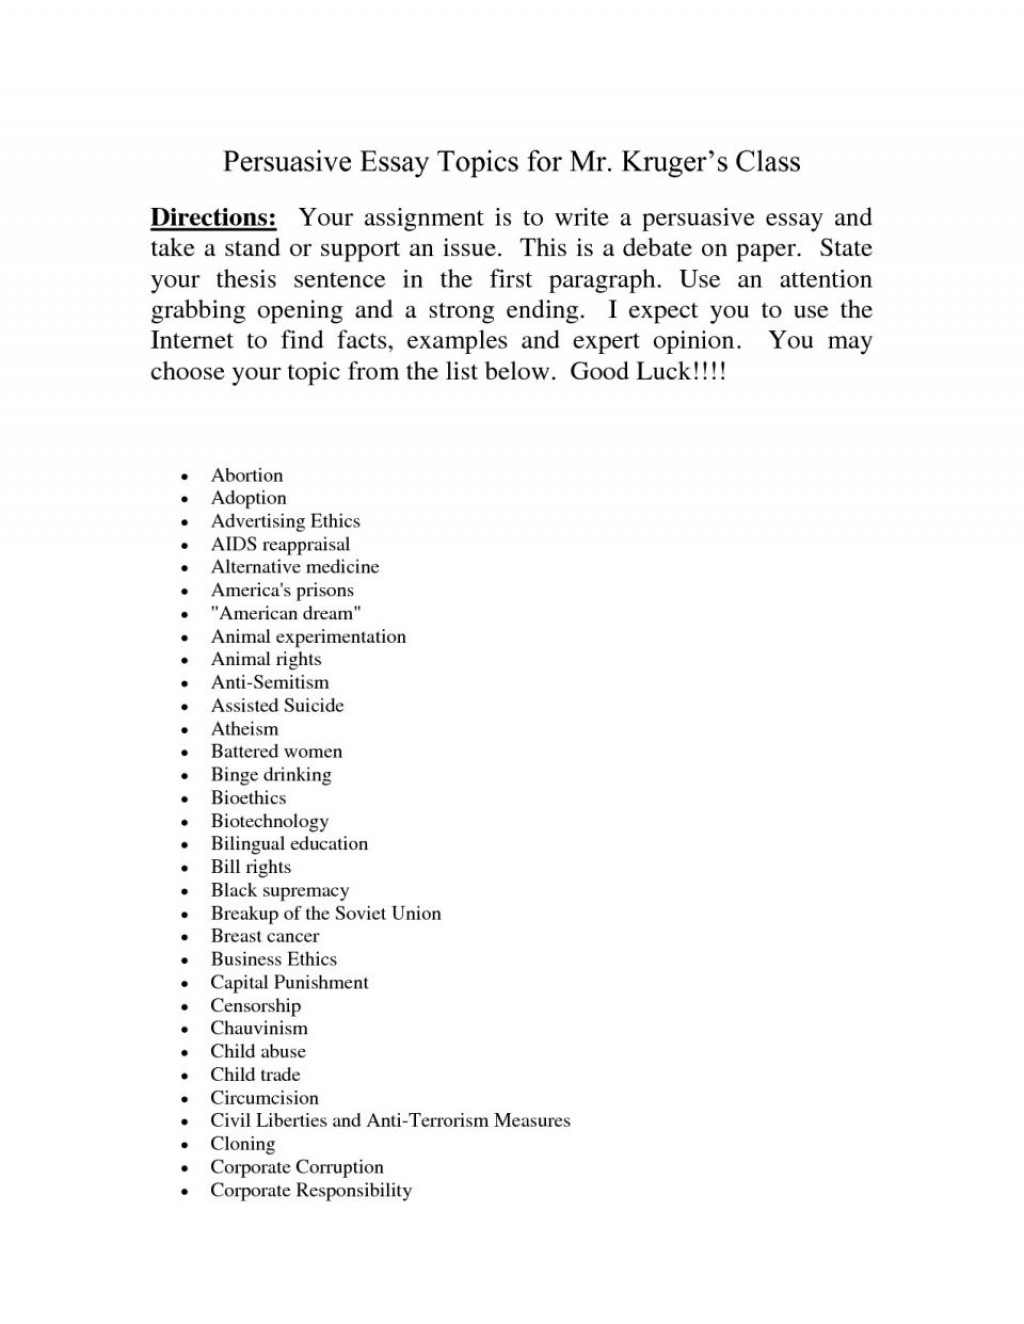 001 Research Paper Topics Topic For Essay Barca Fontanacountryinn Within Good Persuasive Narrative To Write Abo Easy About Personal Descriptive Informative Formidable 2017 Accounting In Computer Science Large